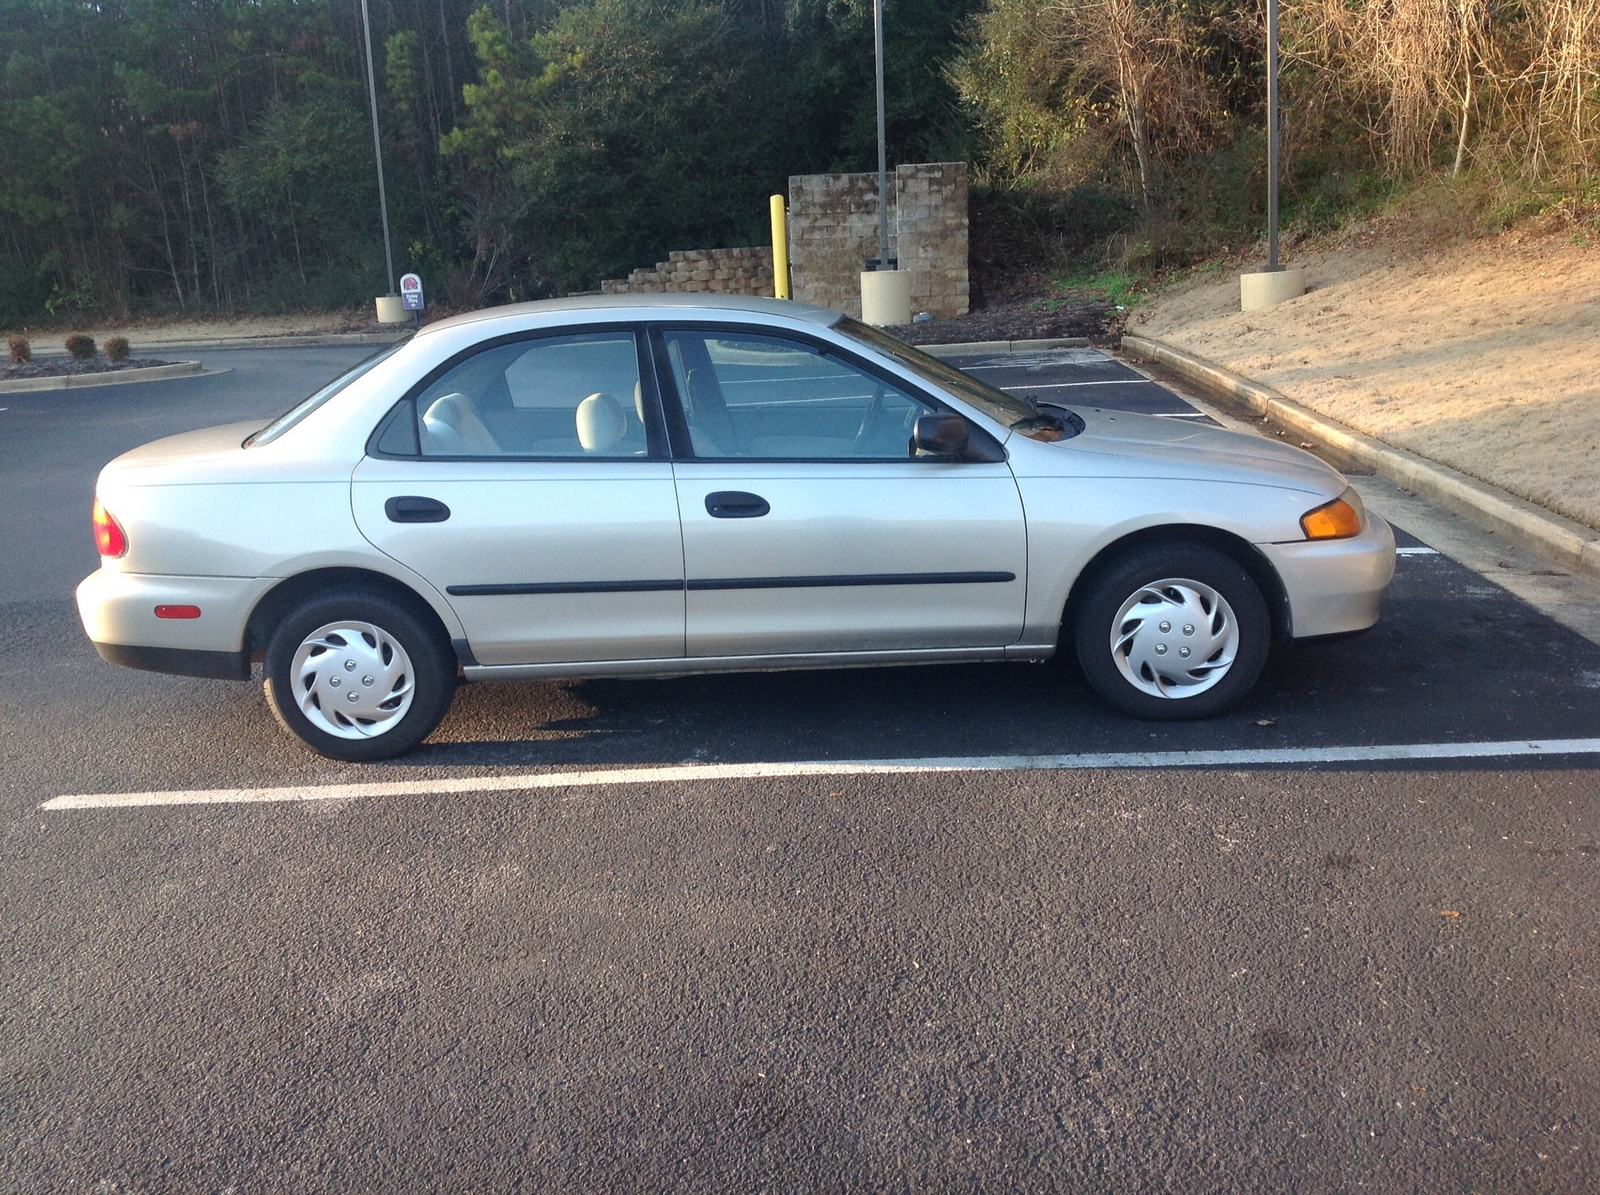 Picture of 1998 Mazda Protege 4 Dr DX Sedan